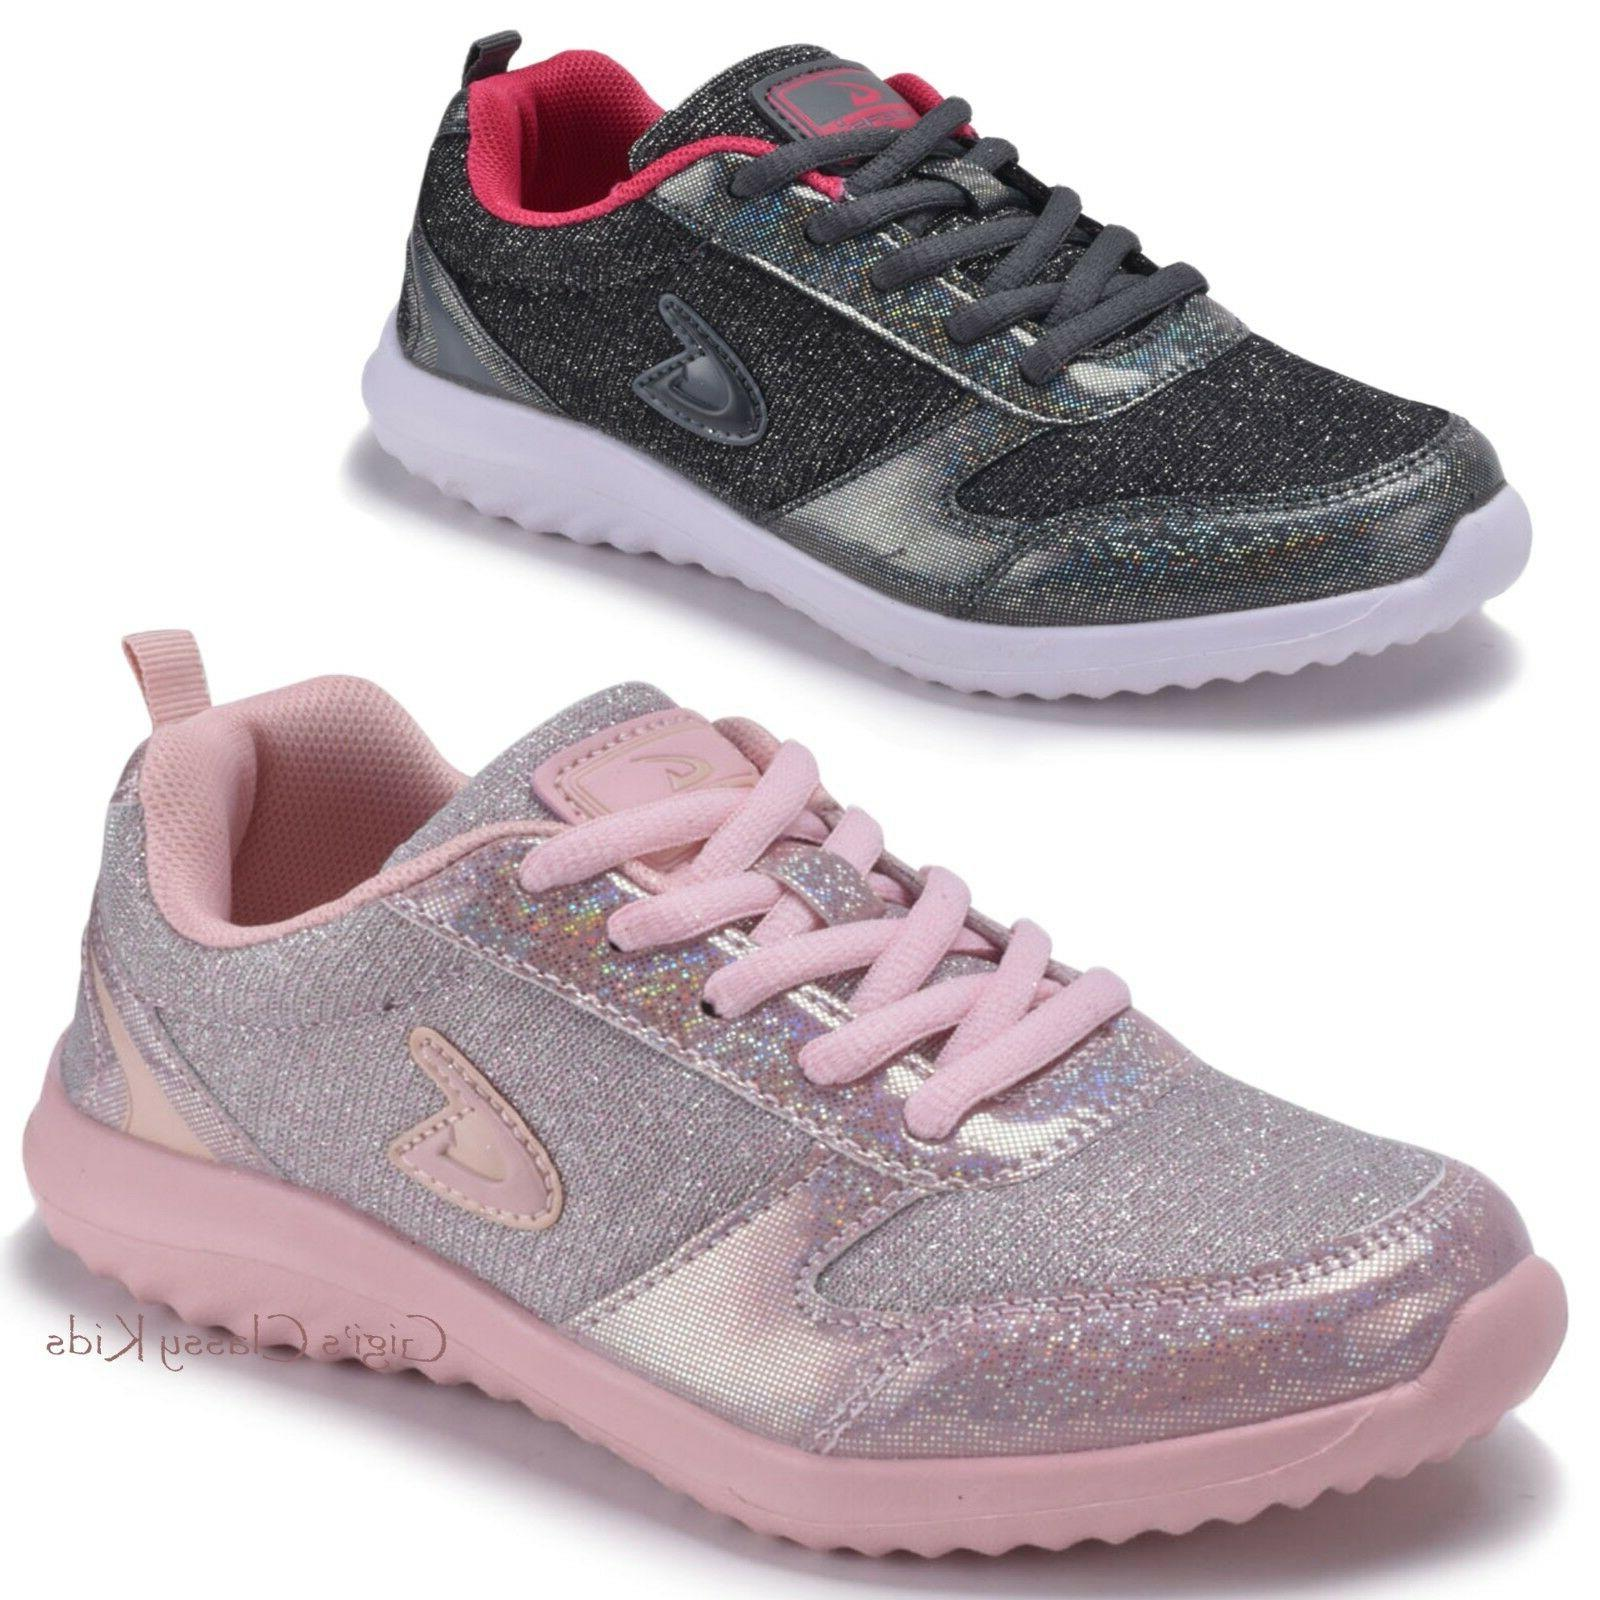 Girls Glitter Sneakers Lace Up Tennis Shoes Kids Youth Athle